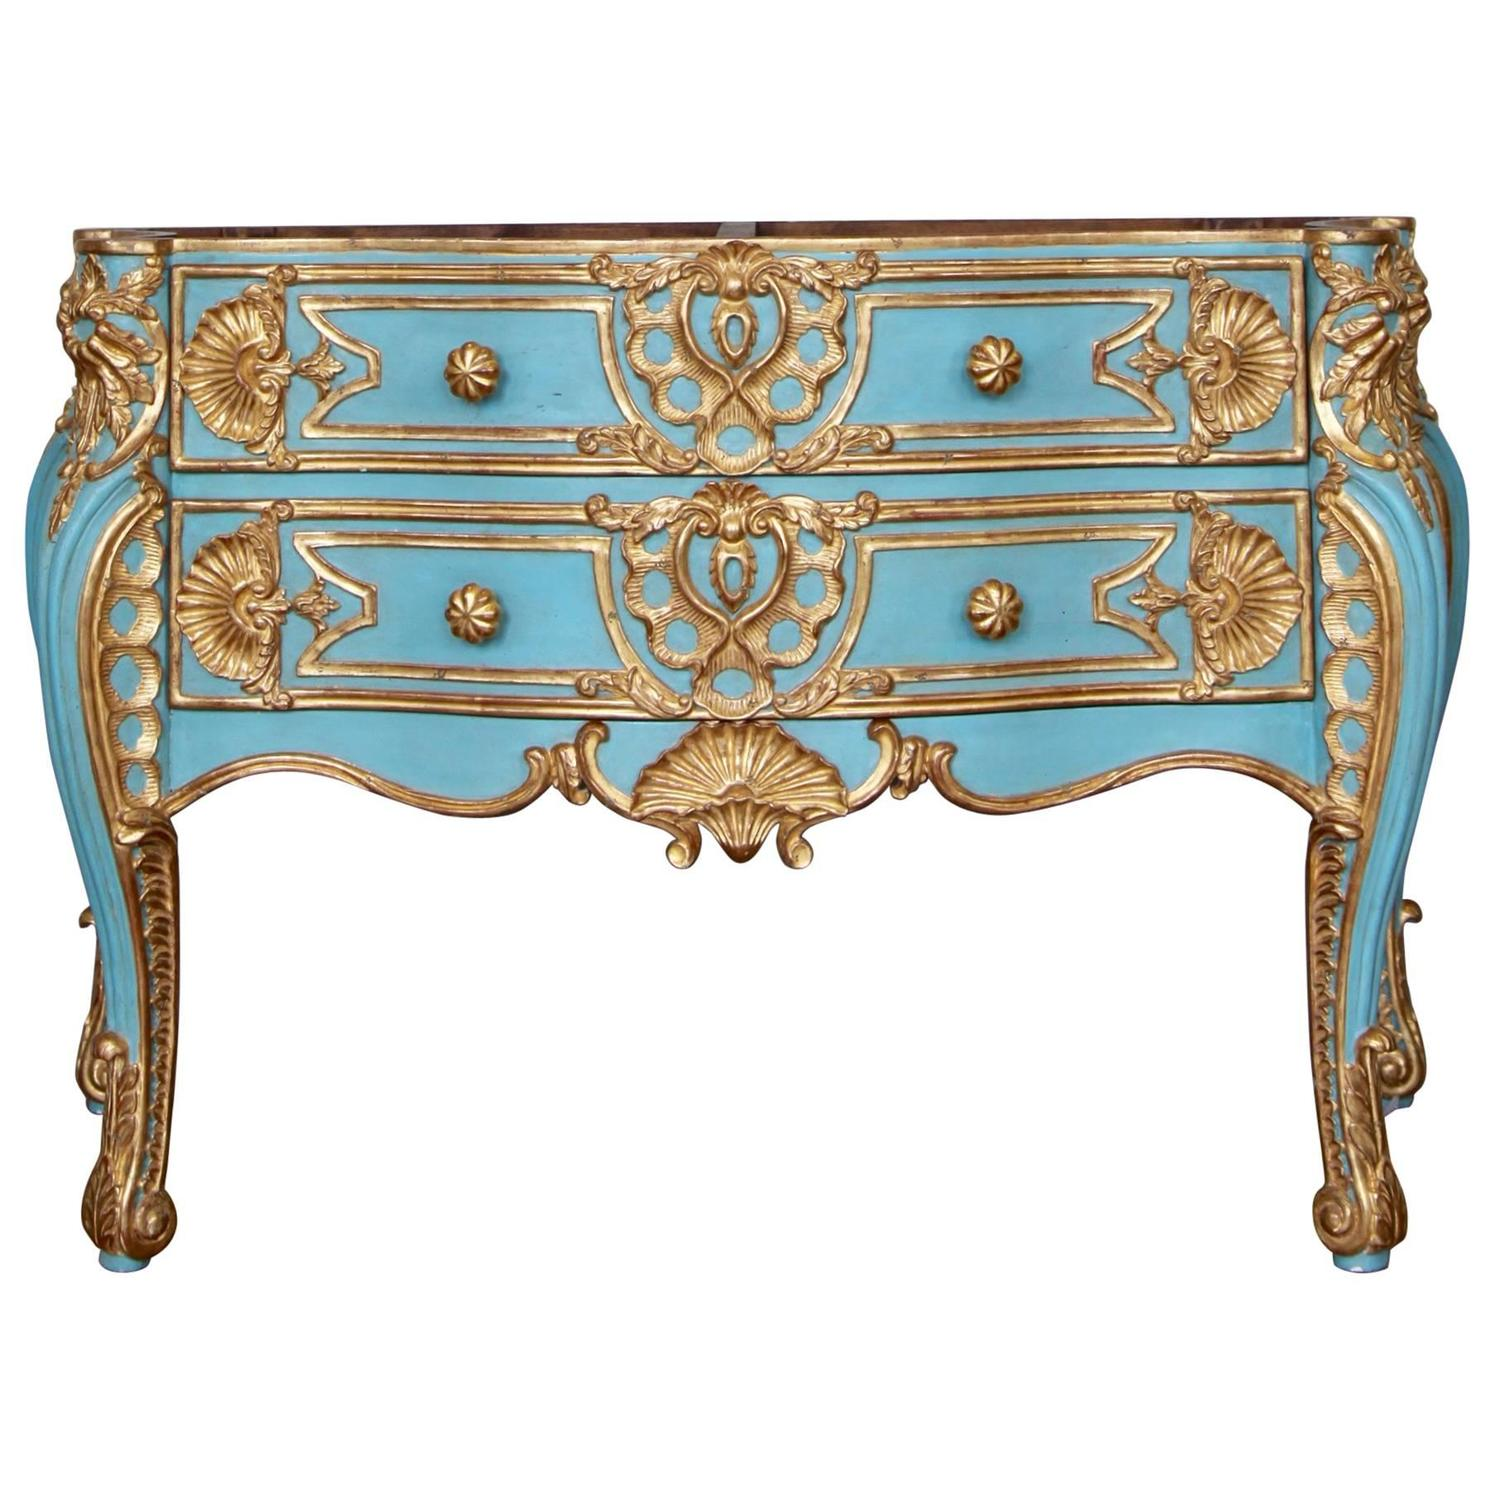 italian baroque style giltwood commode reproduced by la maison london for sale at 1stdibs. Black Bedroom Furniture Sets. Home Design Ideas